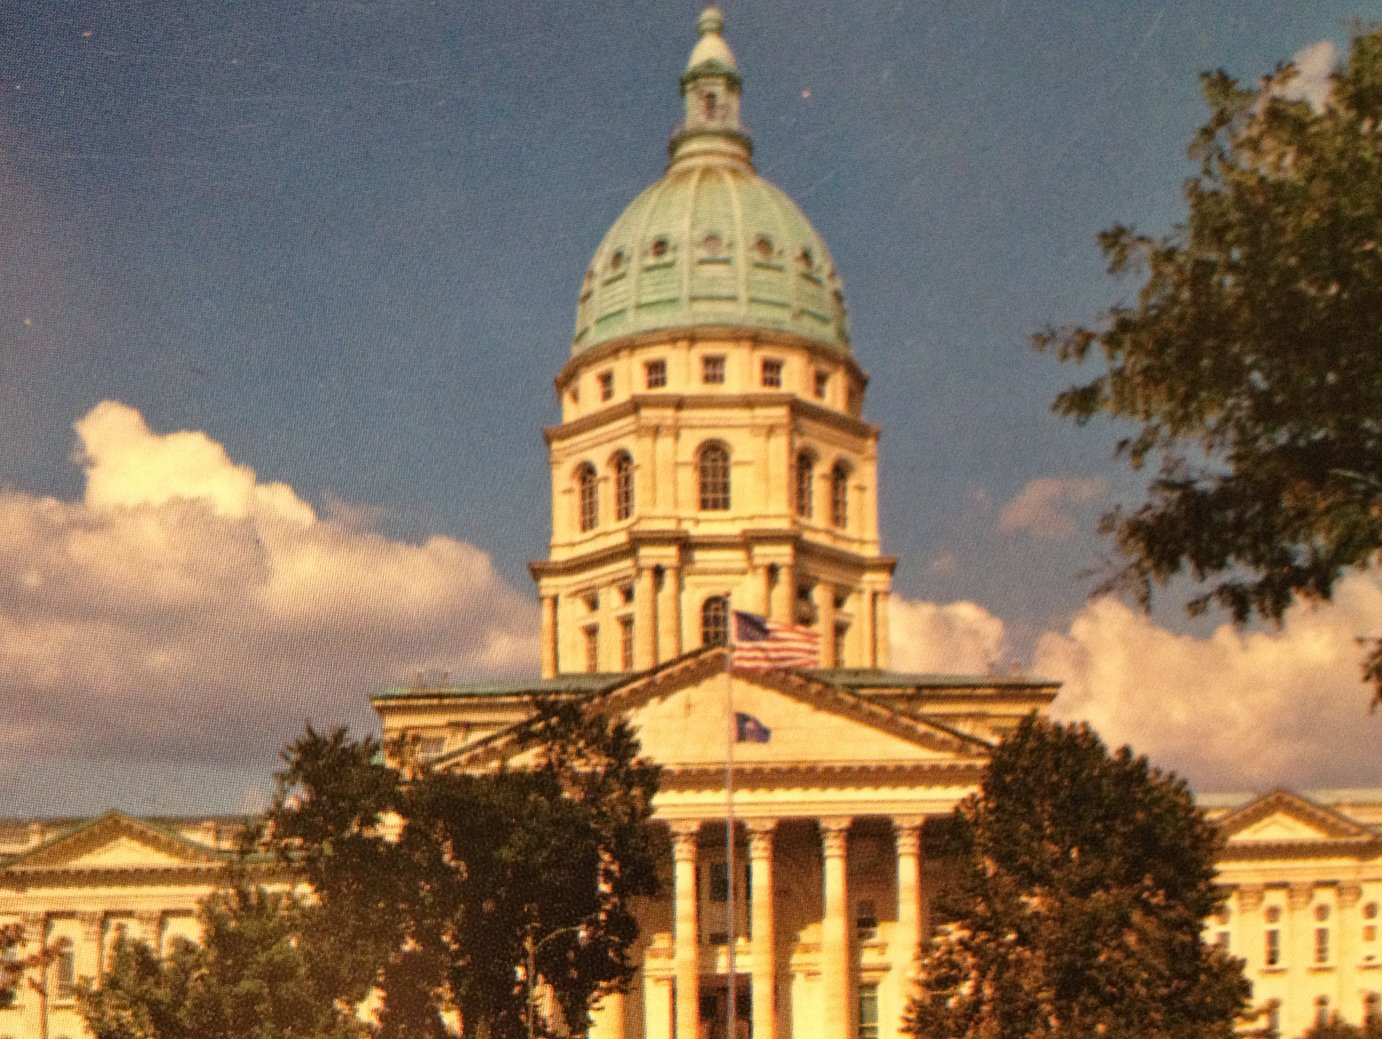 File image of the Kansas Statehouse taken from a postcard used during the administration of Governor Bill Graves.